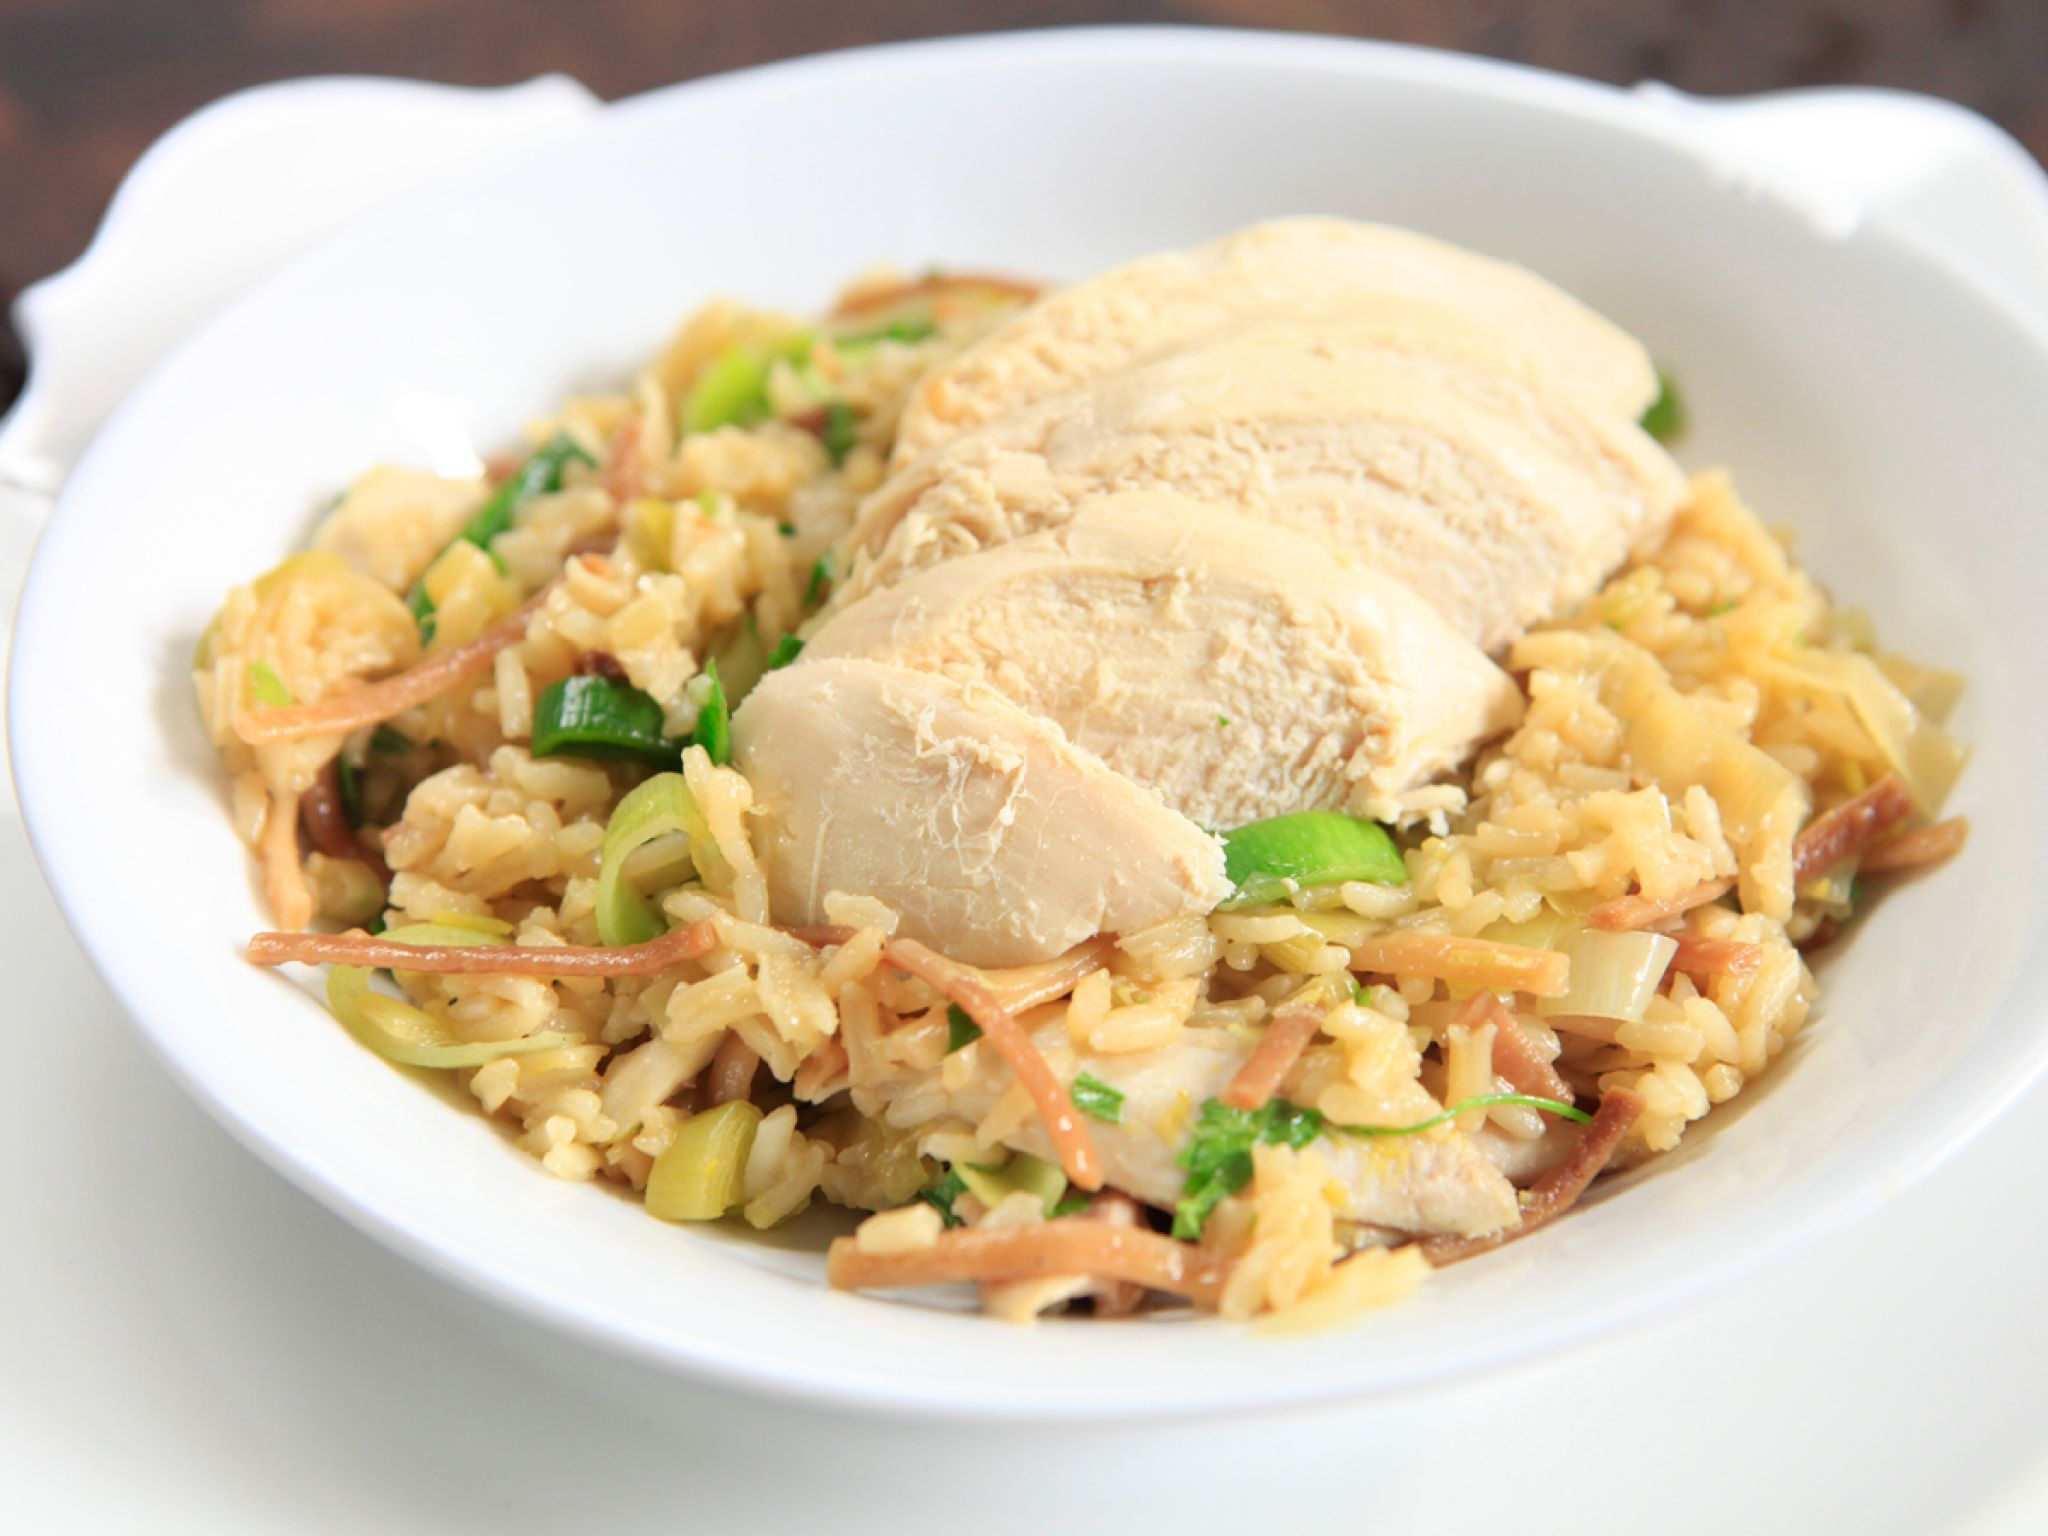 Lemon chicken and leek rice pilaf recipe rice pilaf recipe lemon chicken and leek rice pilaf recipe rice pilaf recipe lemon chicken and rice forumfinder Image collections